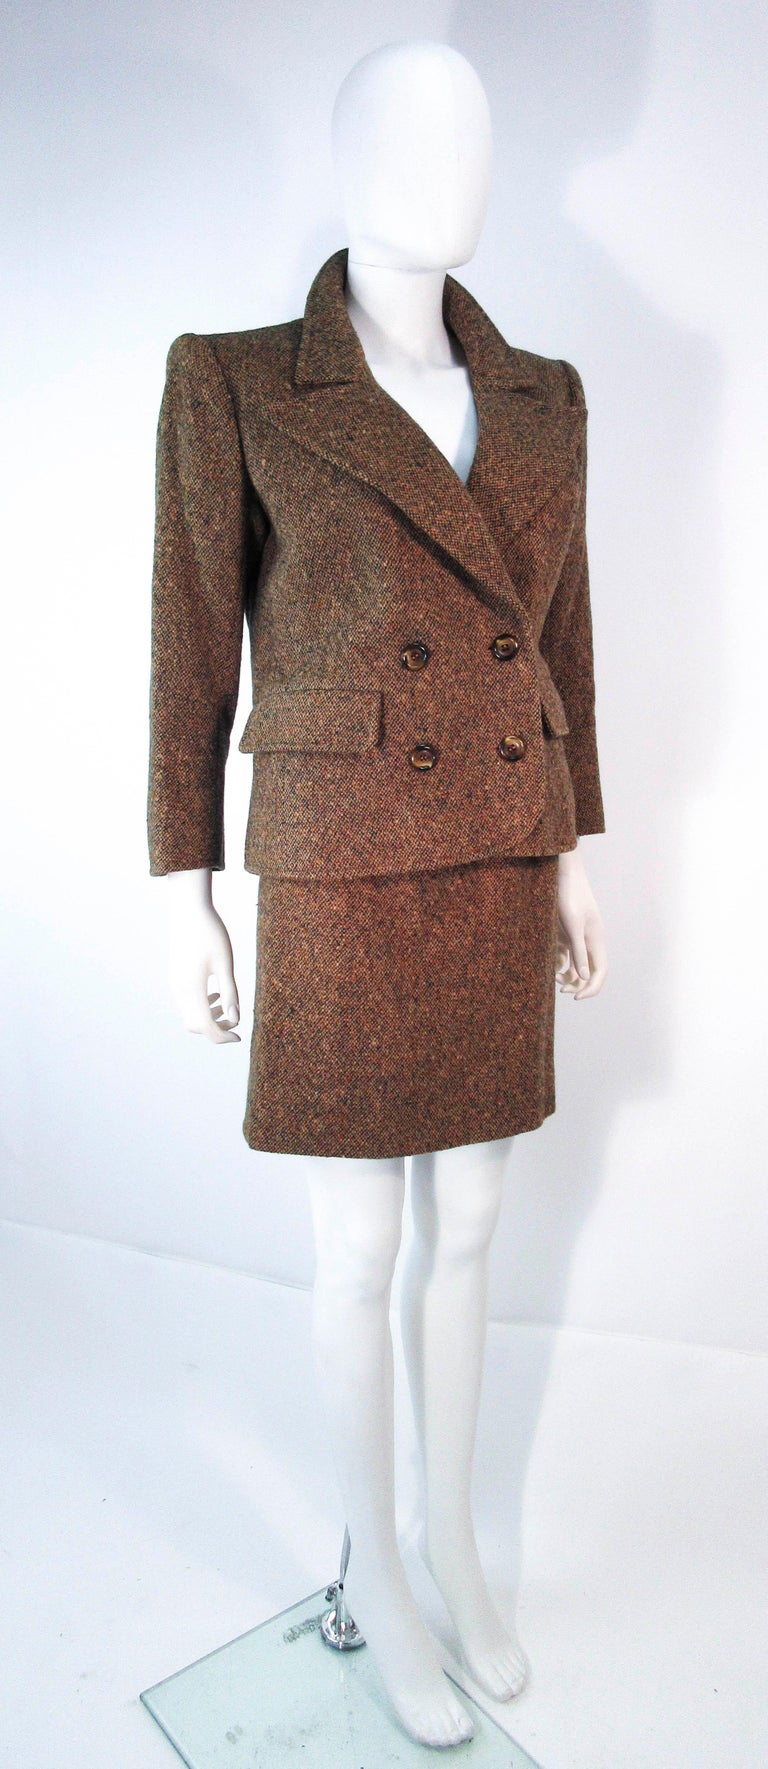 YVES SAINT LAURENT 1970's Brown & Green Skirt Suit Size 4 6 For Sale 3